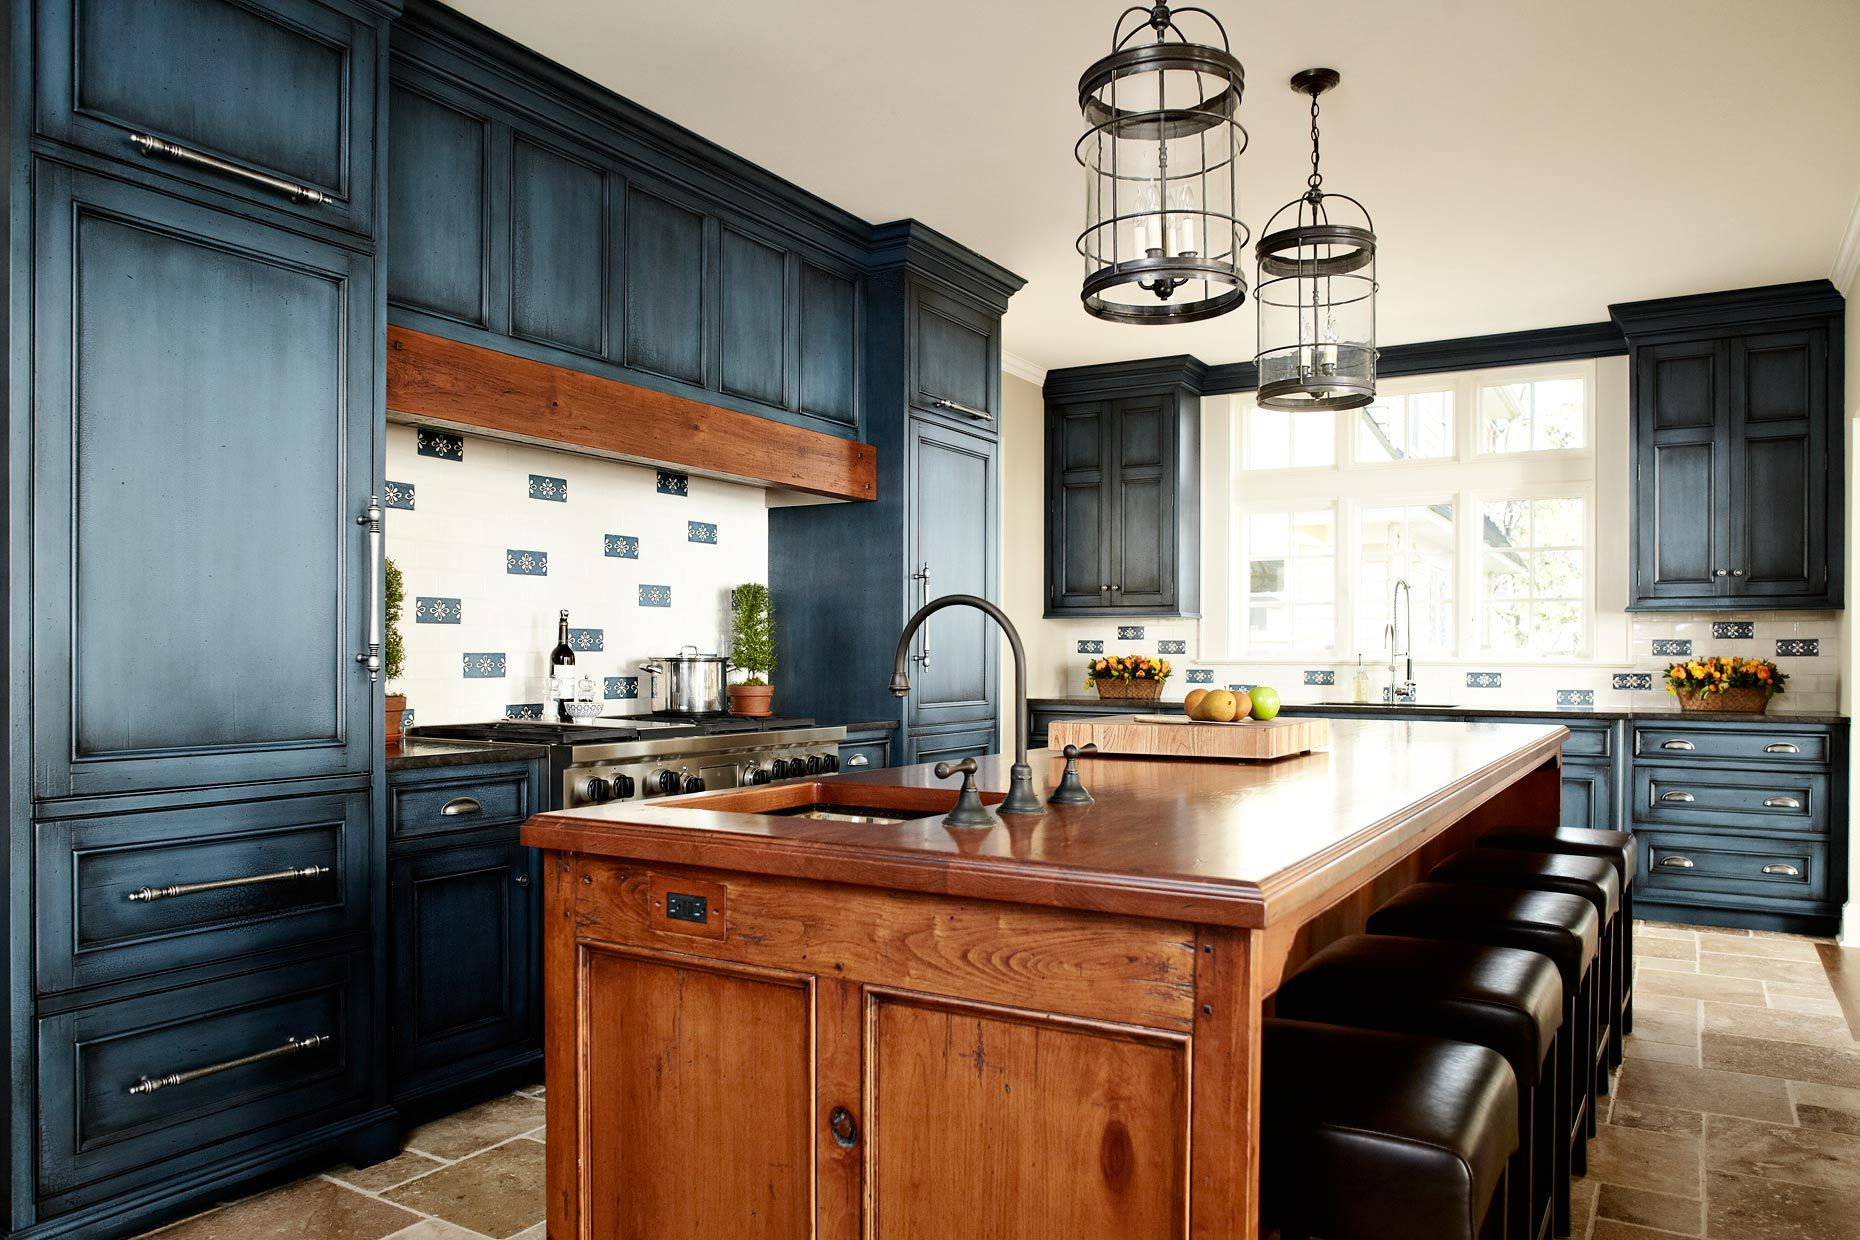 Rustic Wood Countertops Distressed Kitchen Cabinets Tuscan Kitchen Design Painted Kitchen Cabinets Colors